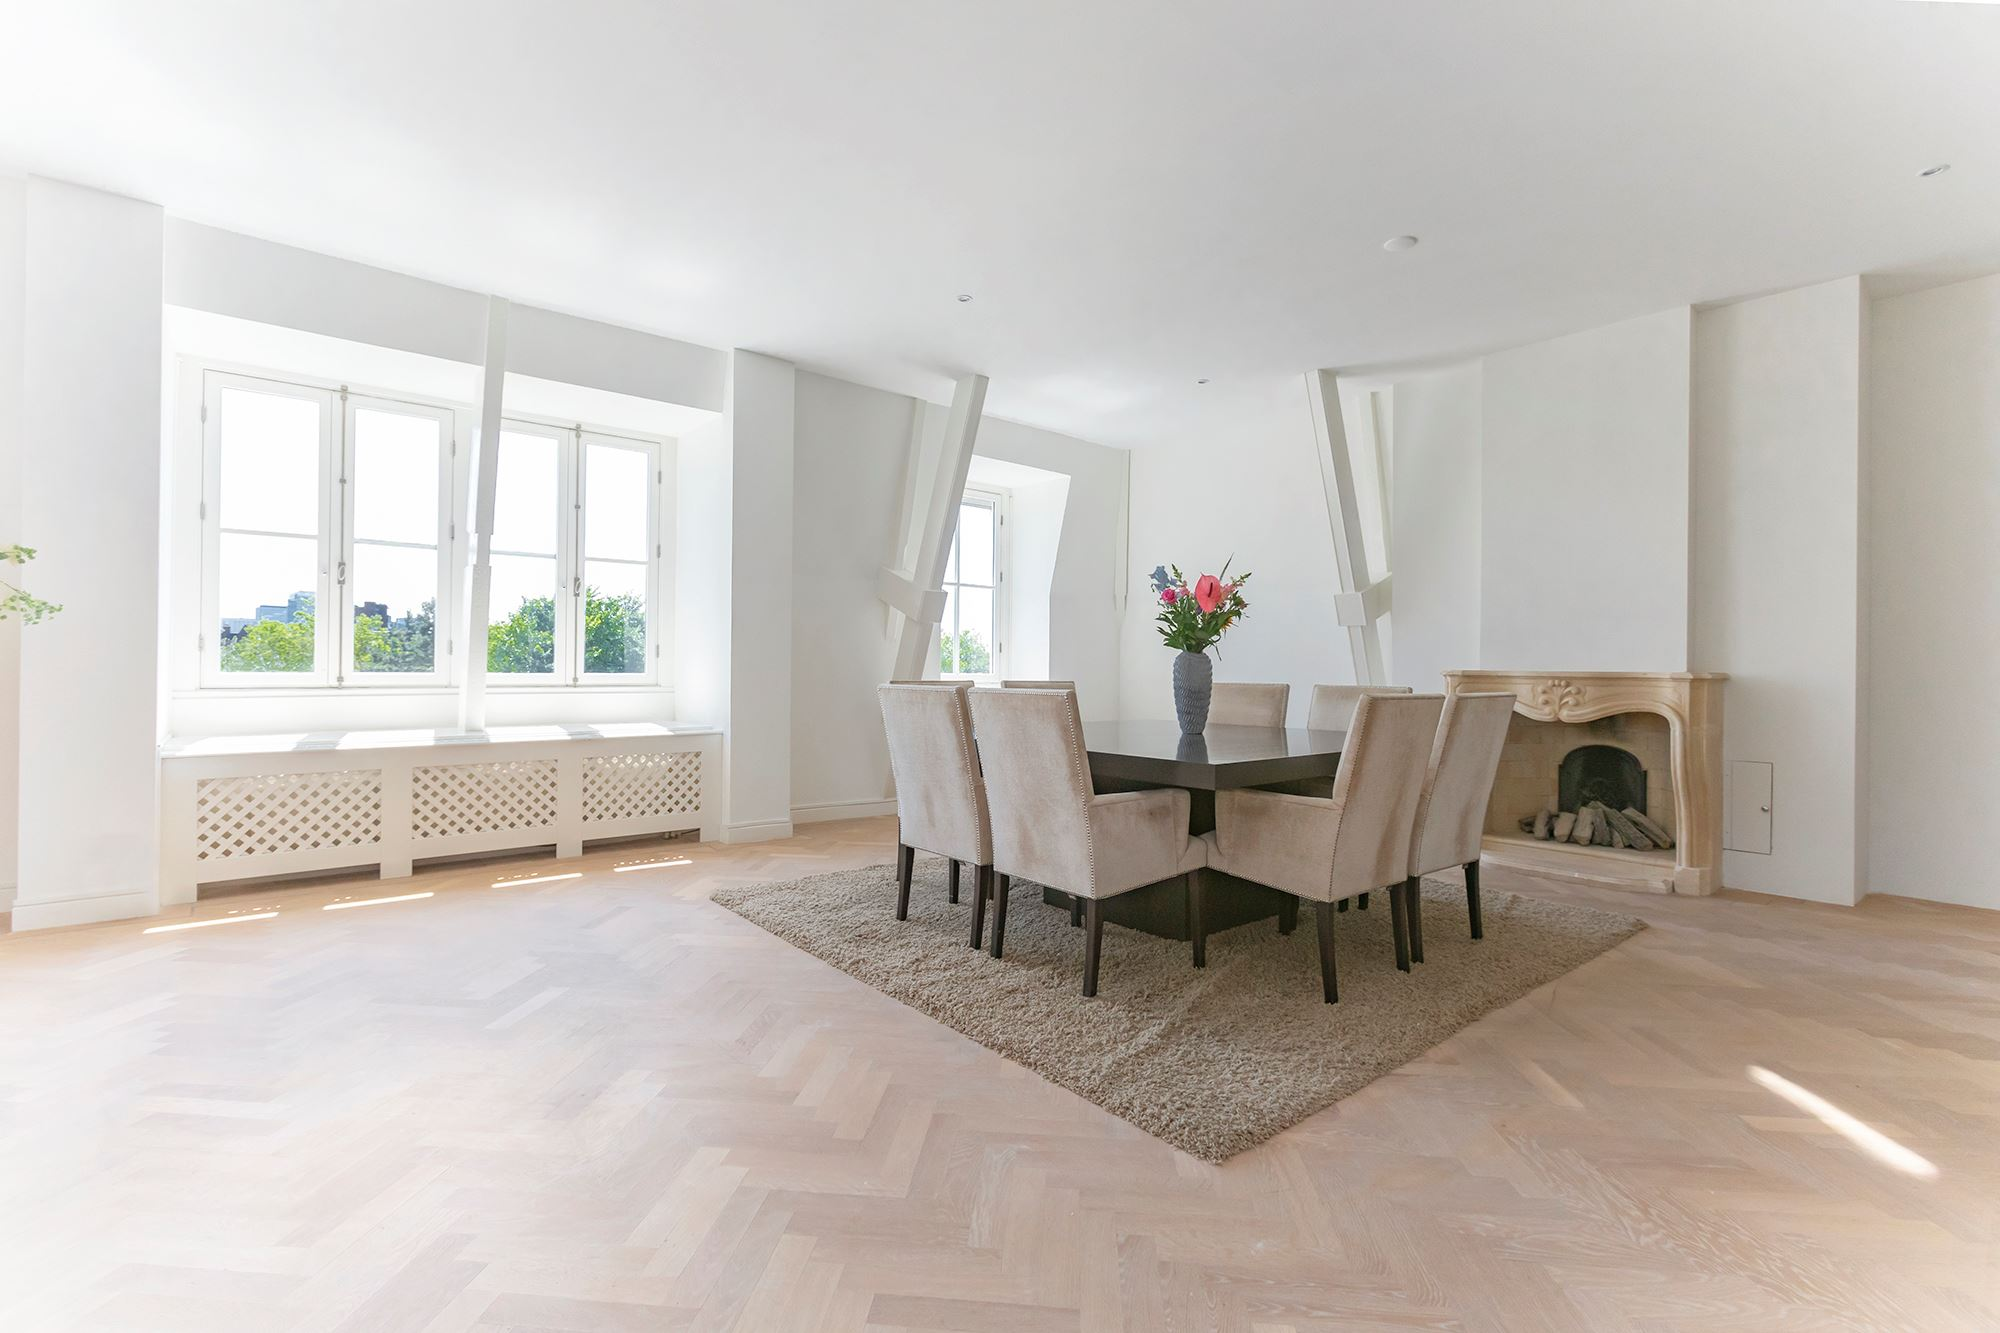 woonkamer 2 penthouse